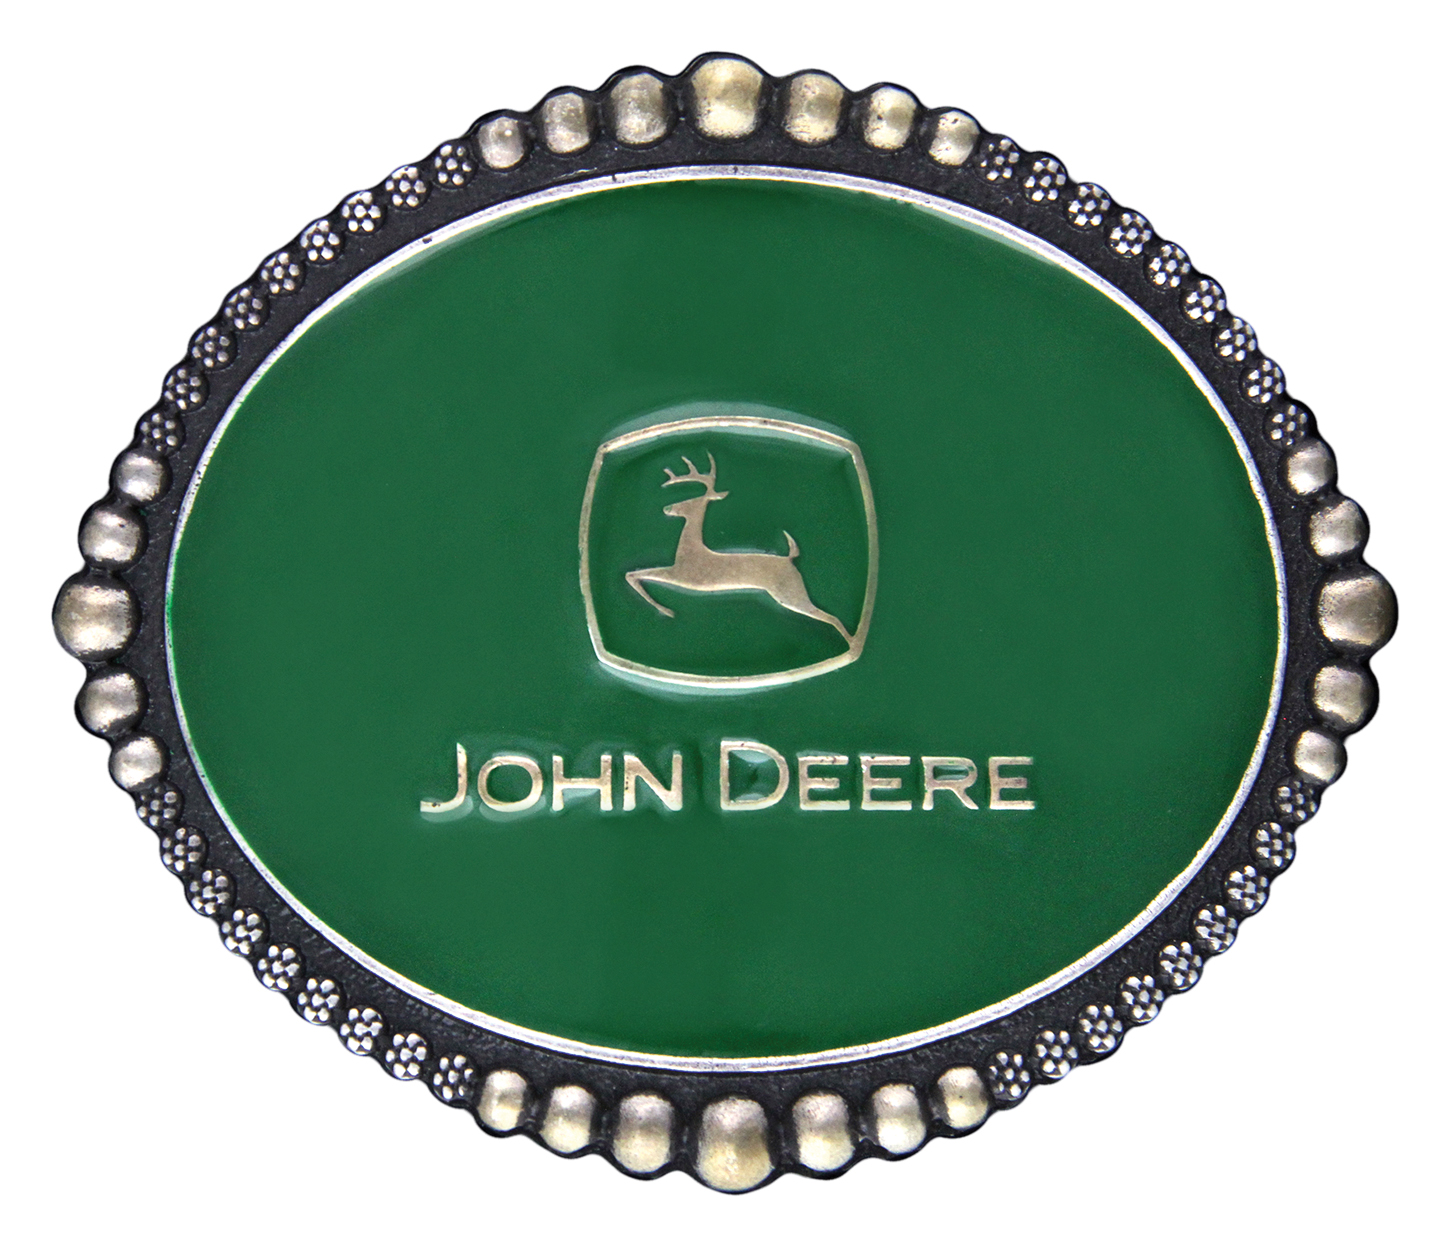 Montana Silversmiths John Deer Classic Green Attitude Buckle with Beads and Berry Trim